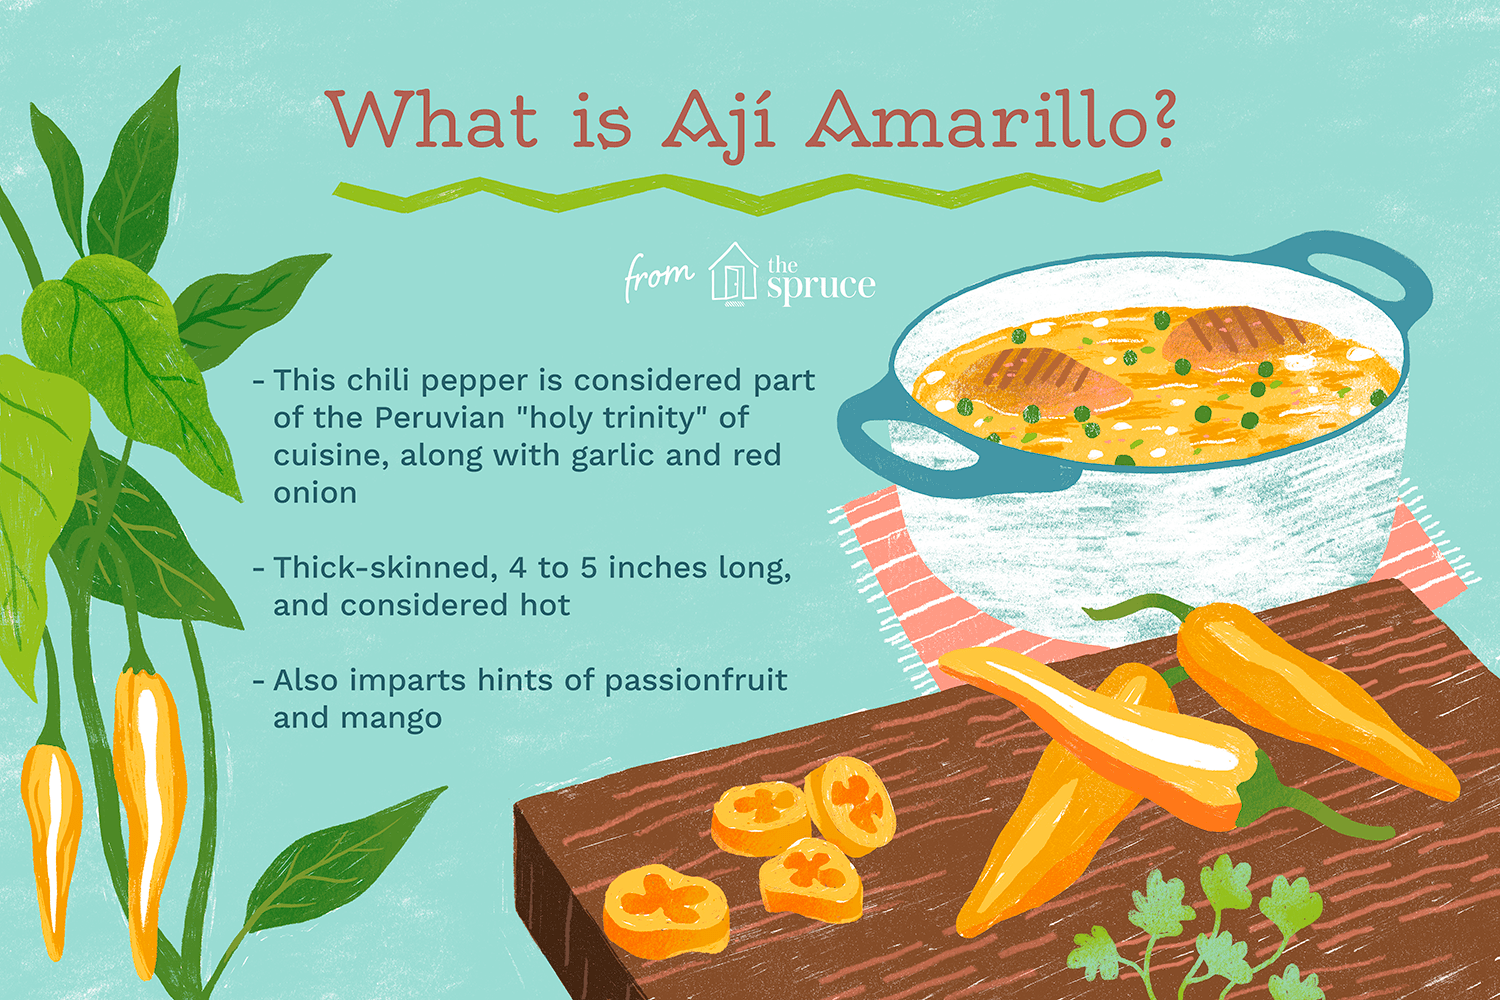 illustrated overview of what aji amarillo is